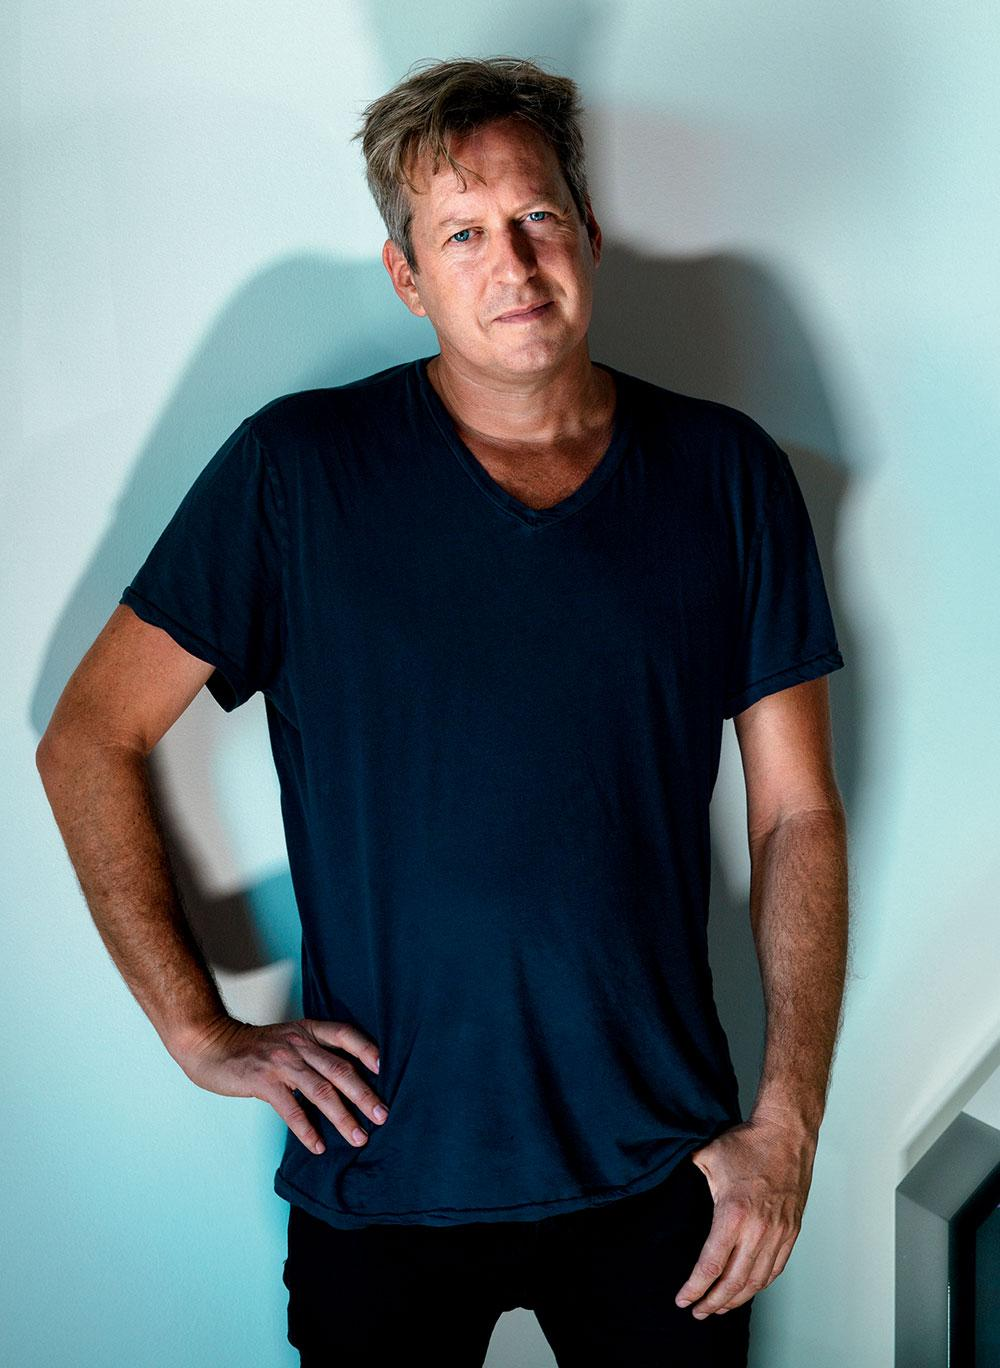 Doug Aitken portrait by Mark Mahaney